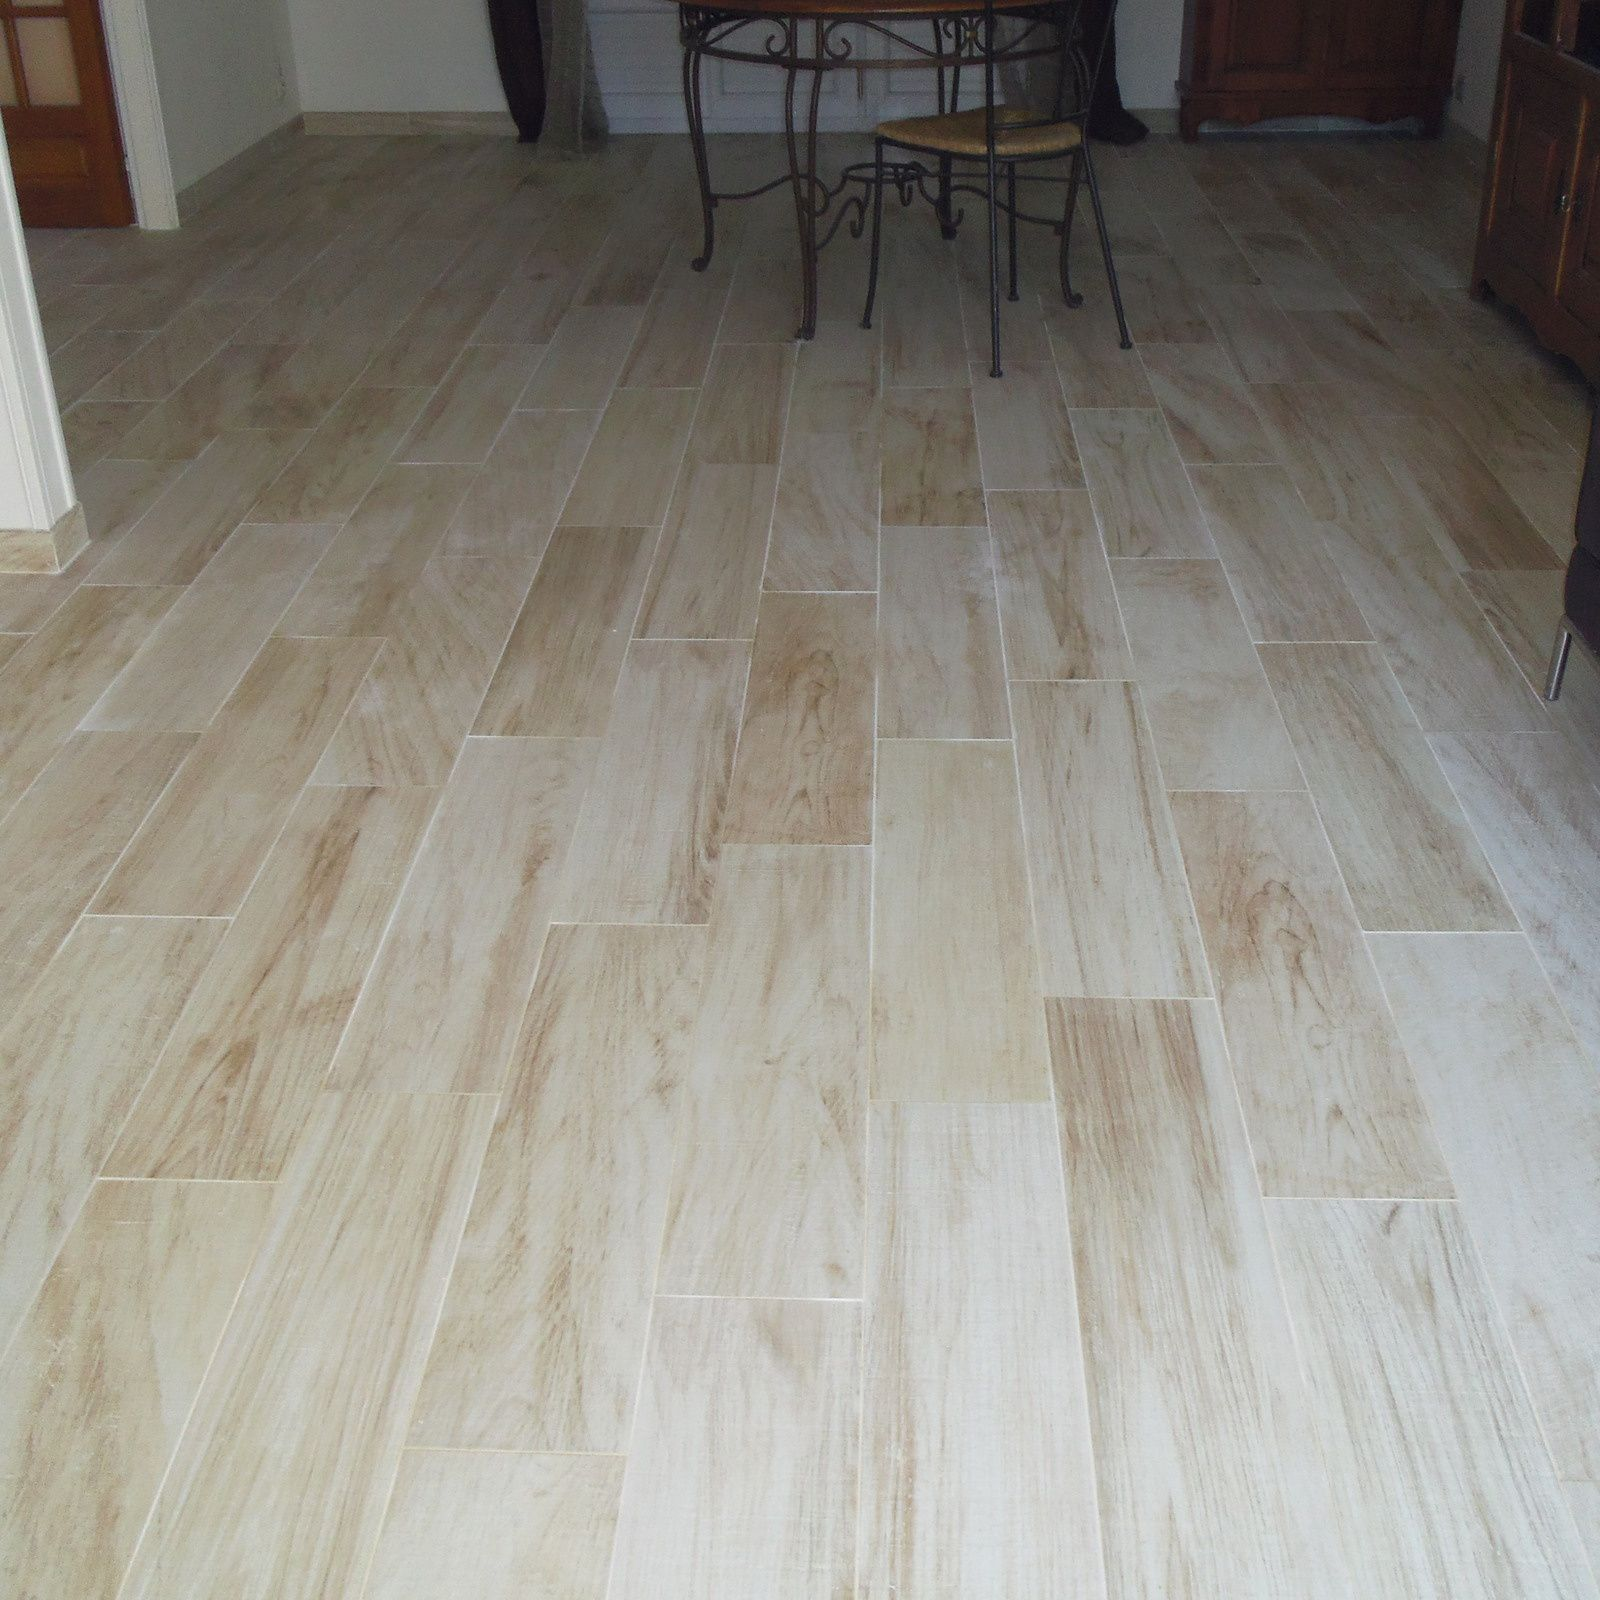 Hervorragend Pose d'un carrelage imitation parquet - Rénovation en bâtiment OB61